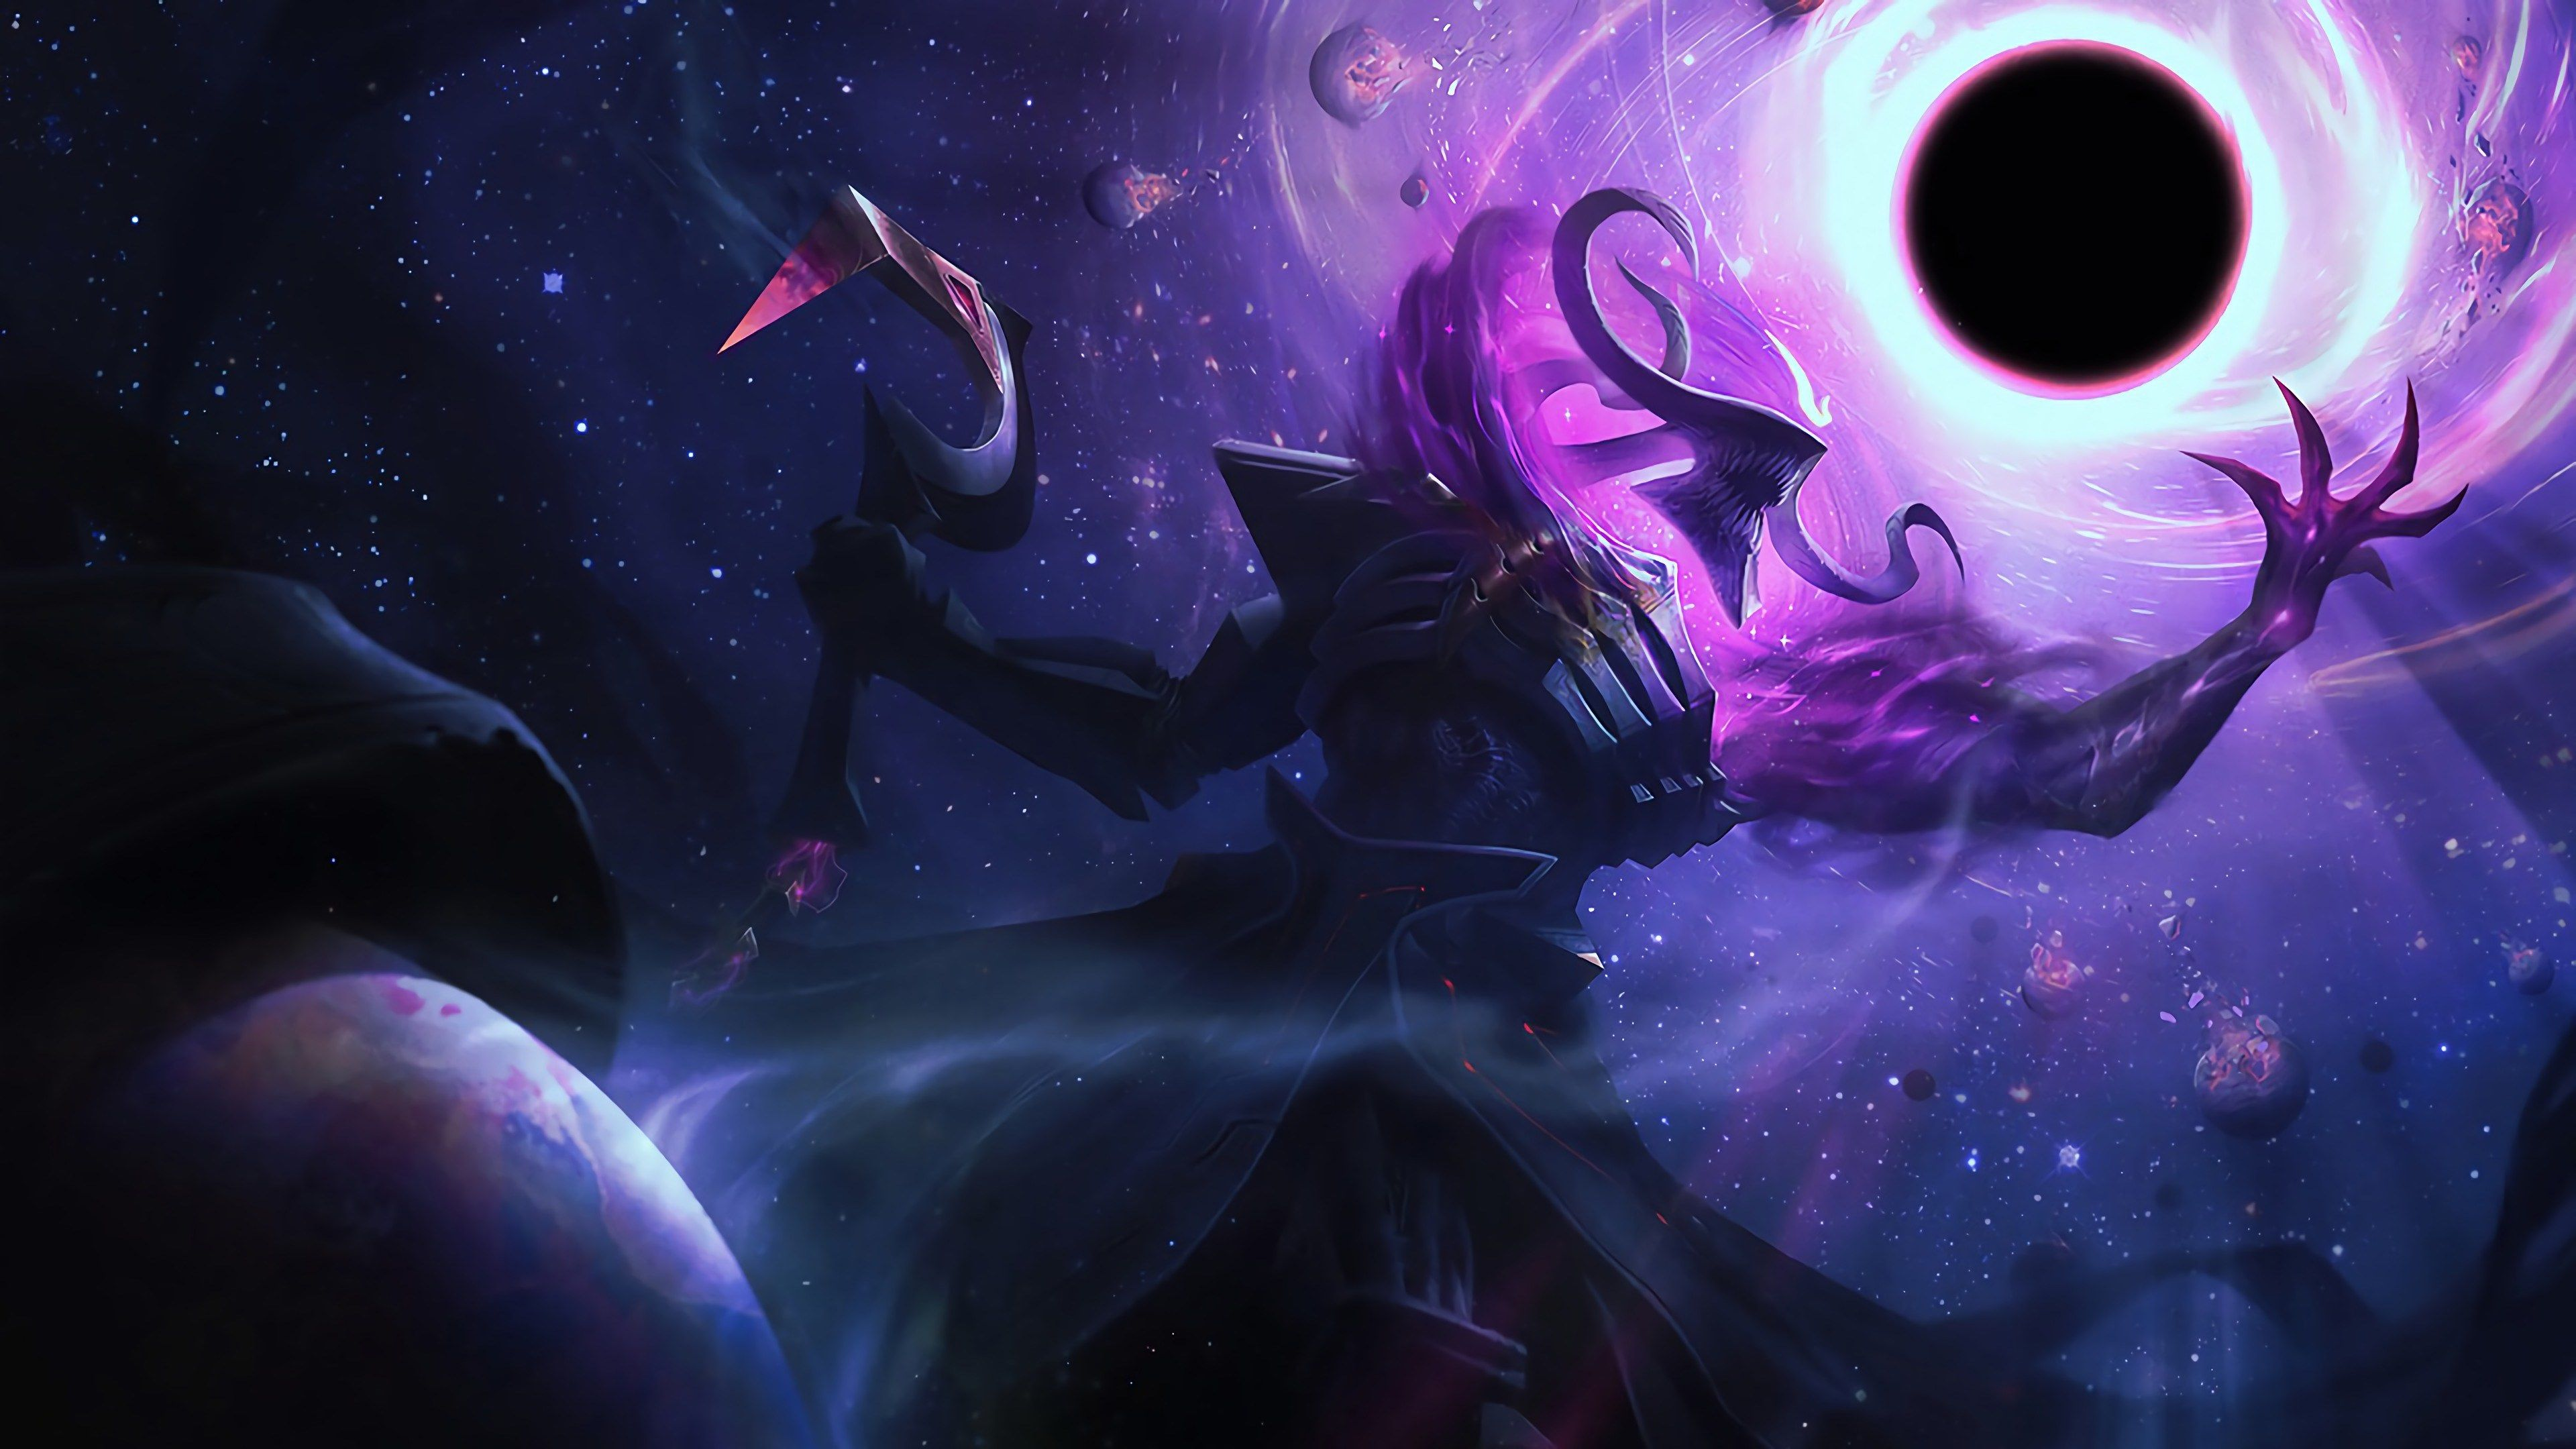 3840x2160 Dark Star Thresh 4k Wallpaper For Desktop Background Free Download League Of Legends Dark Star Art